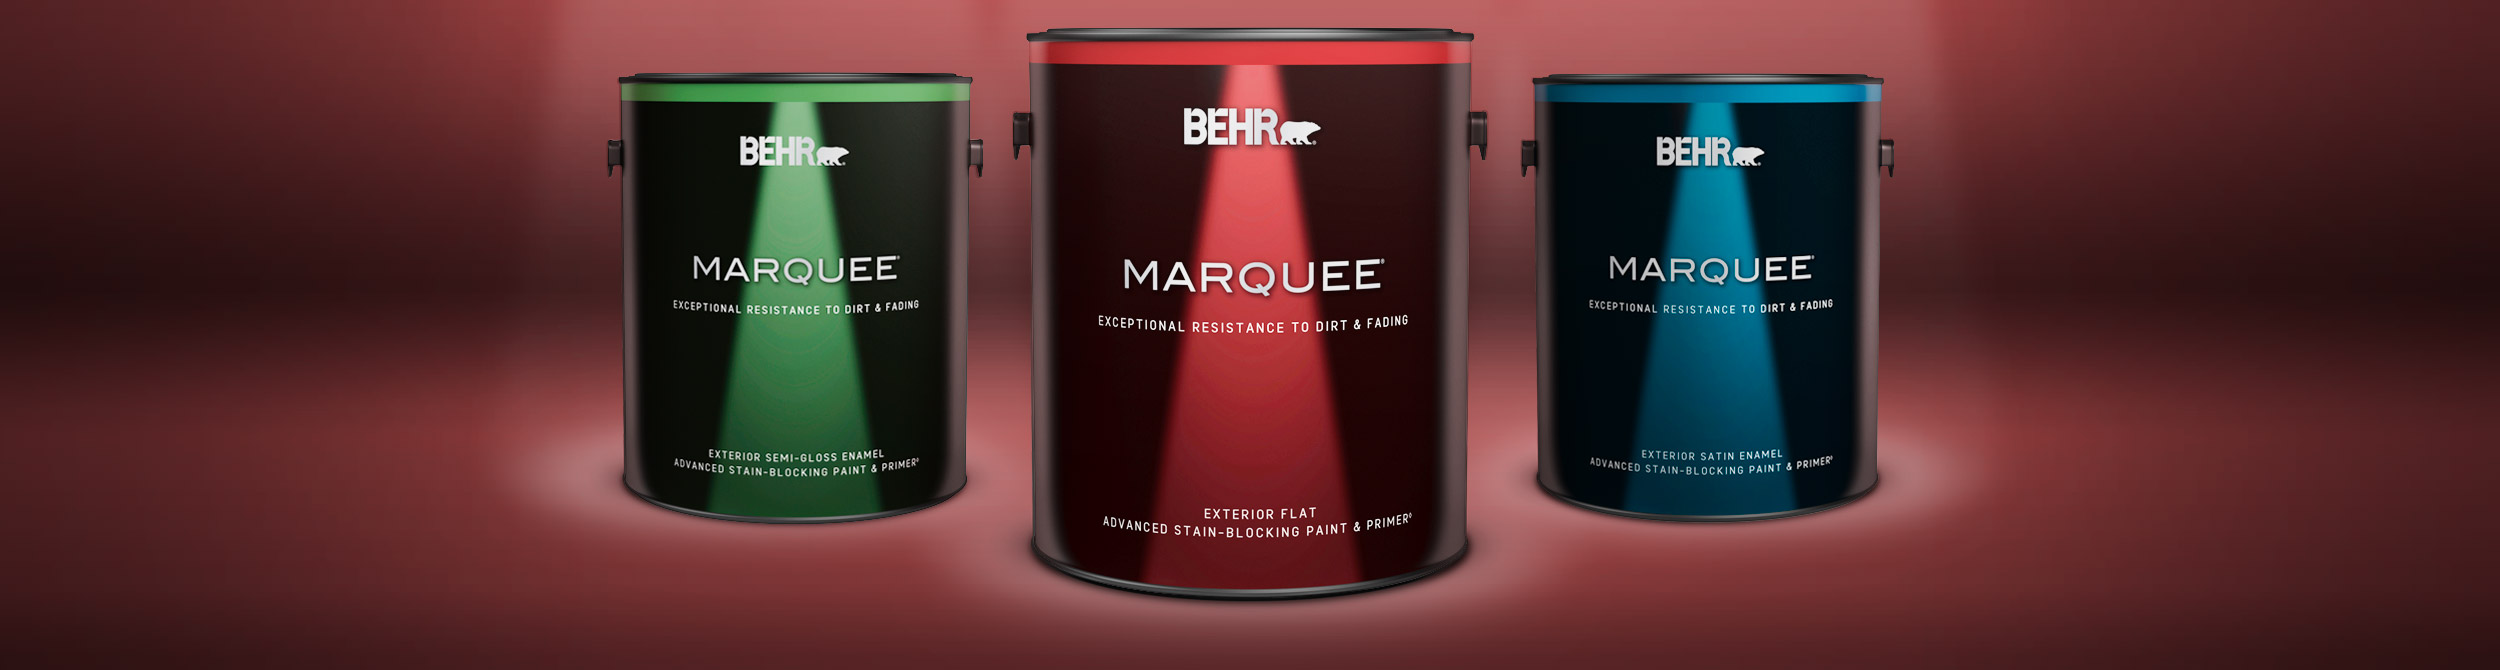 Image of Marquee Exterior Cans